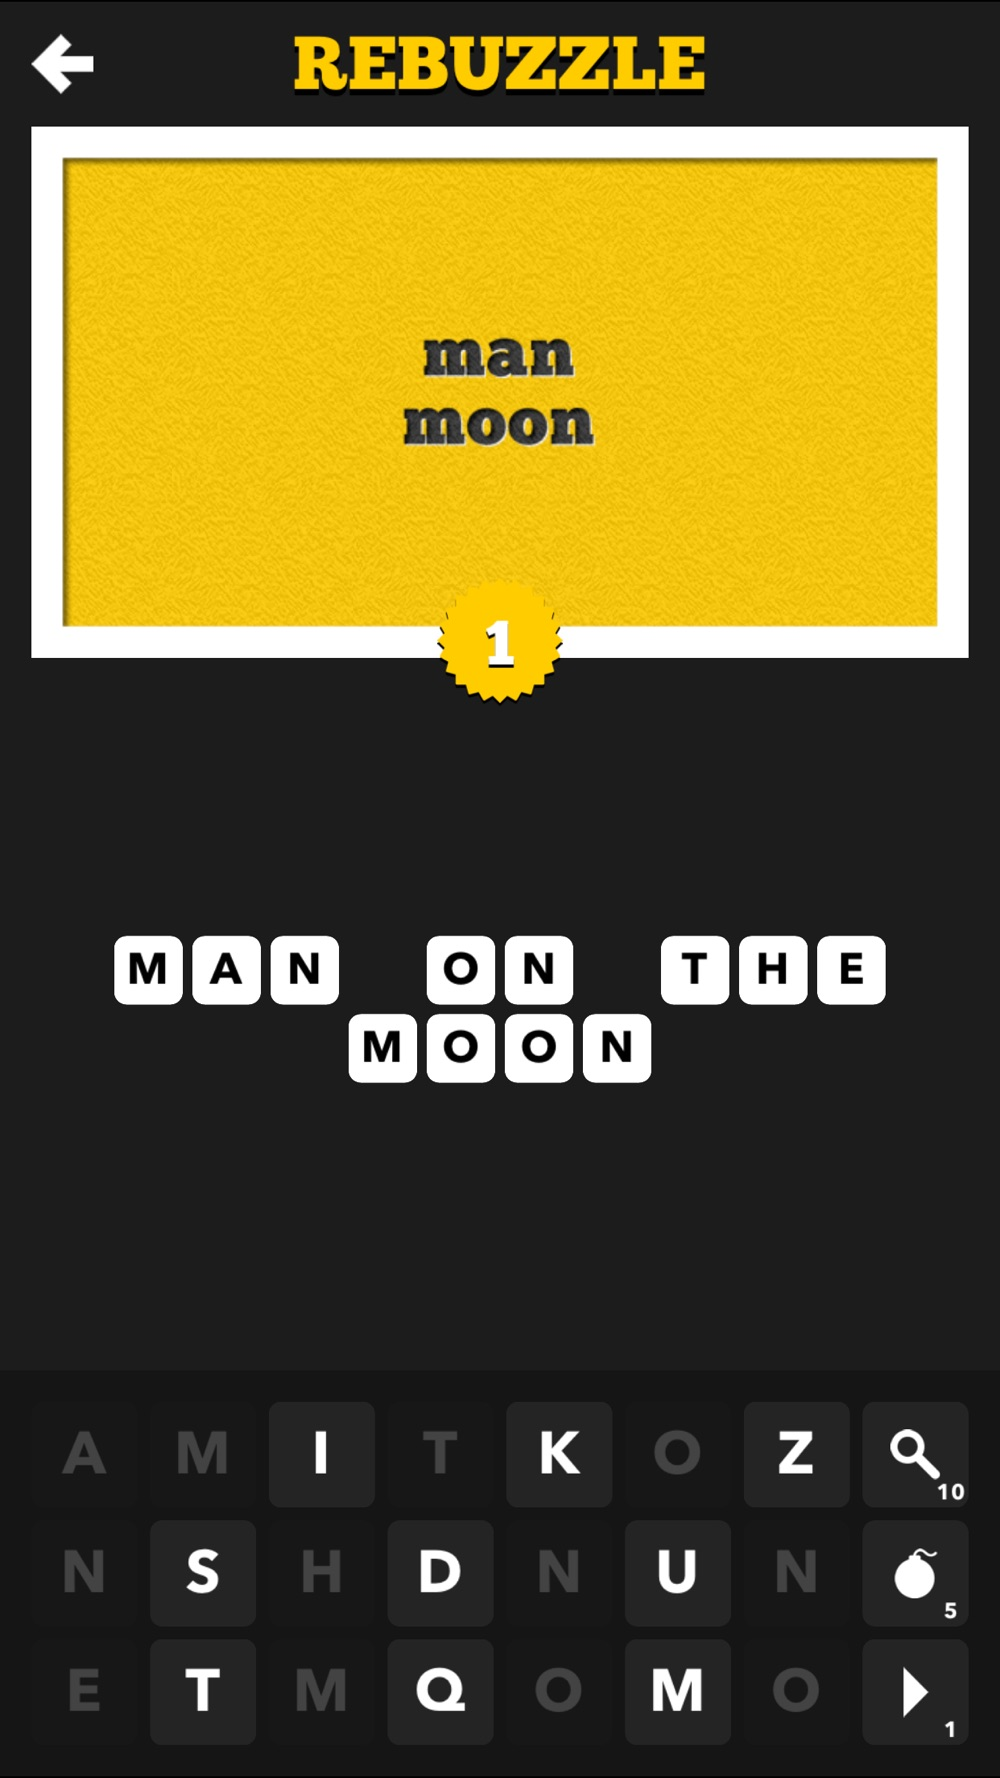 Rebuzzle - A Rebus Word Puzzle Game hack tool